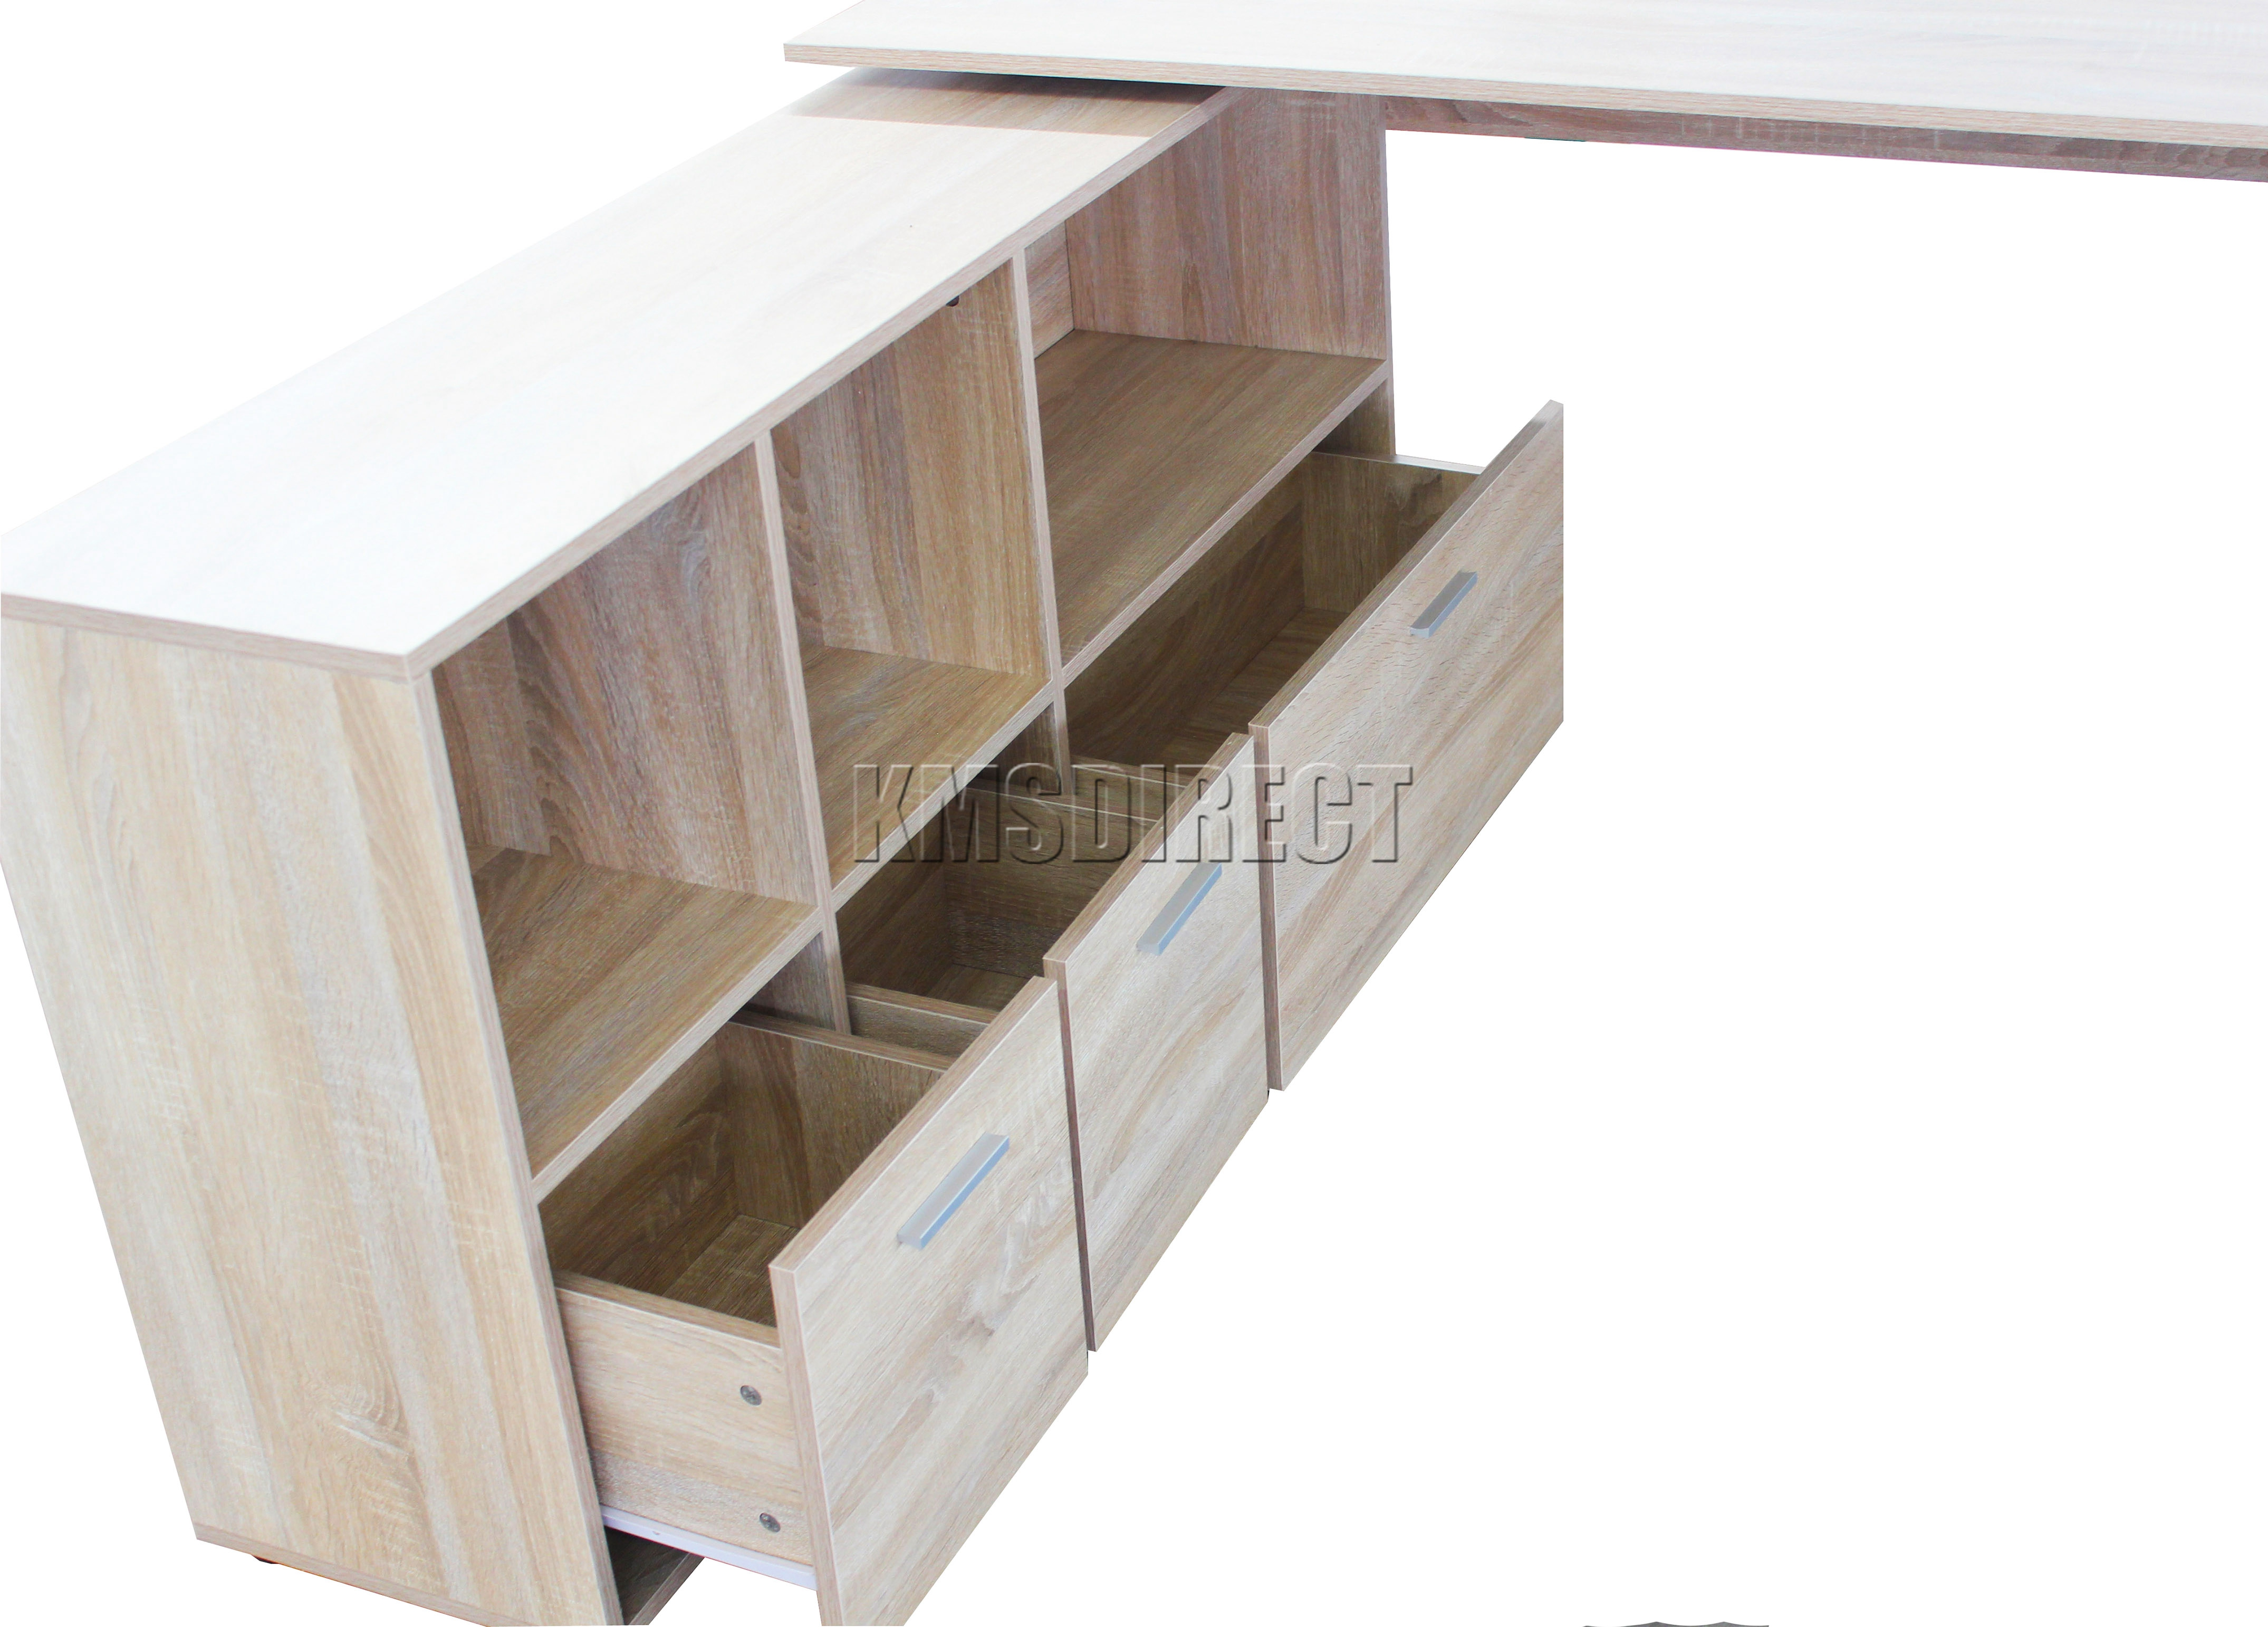 WestWood PC Computer Desk Corner Wooden Desktop Table